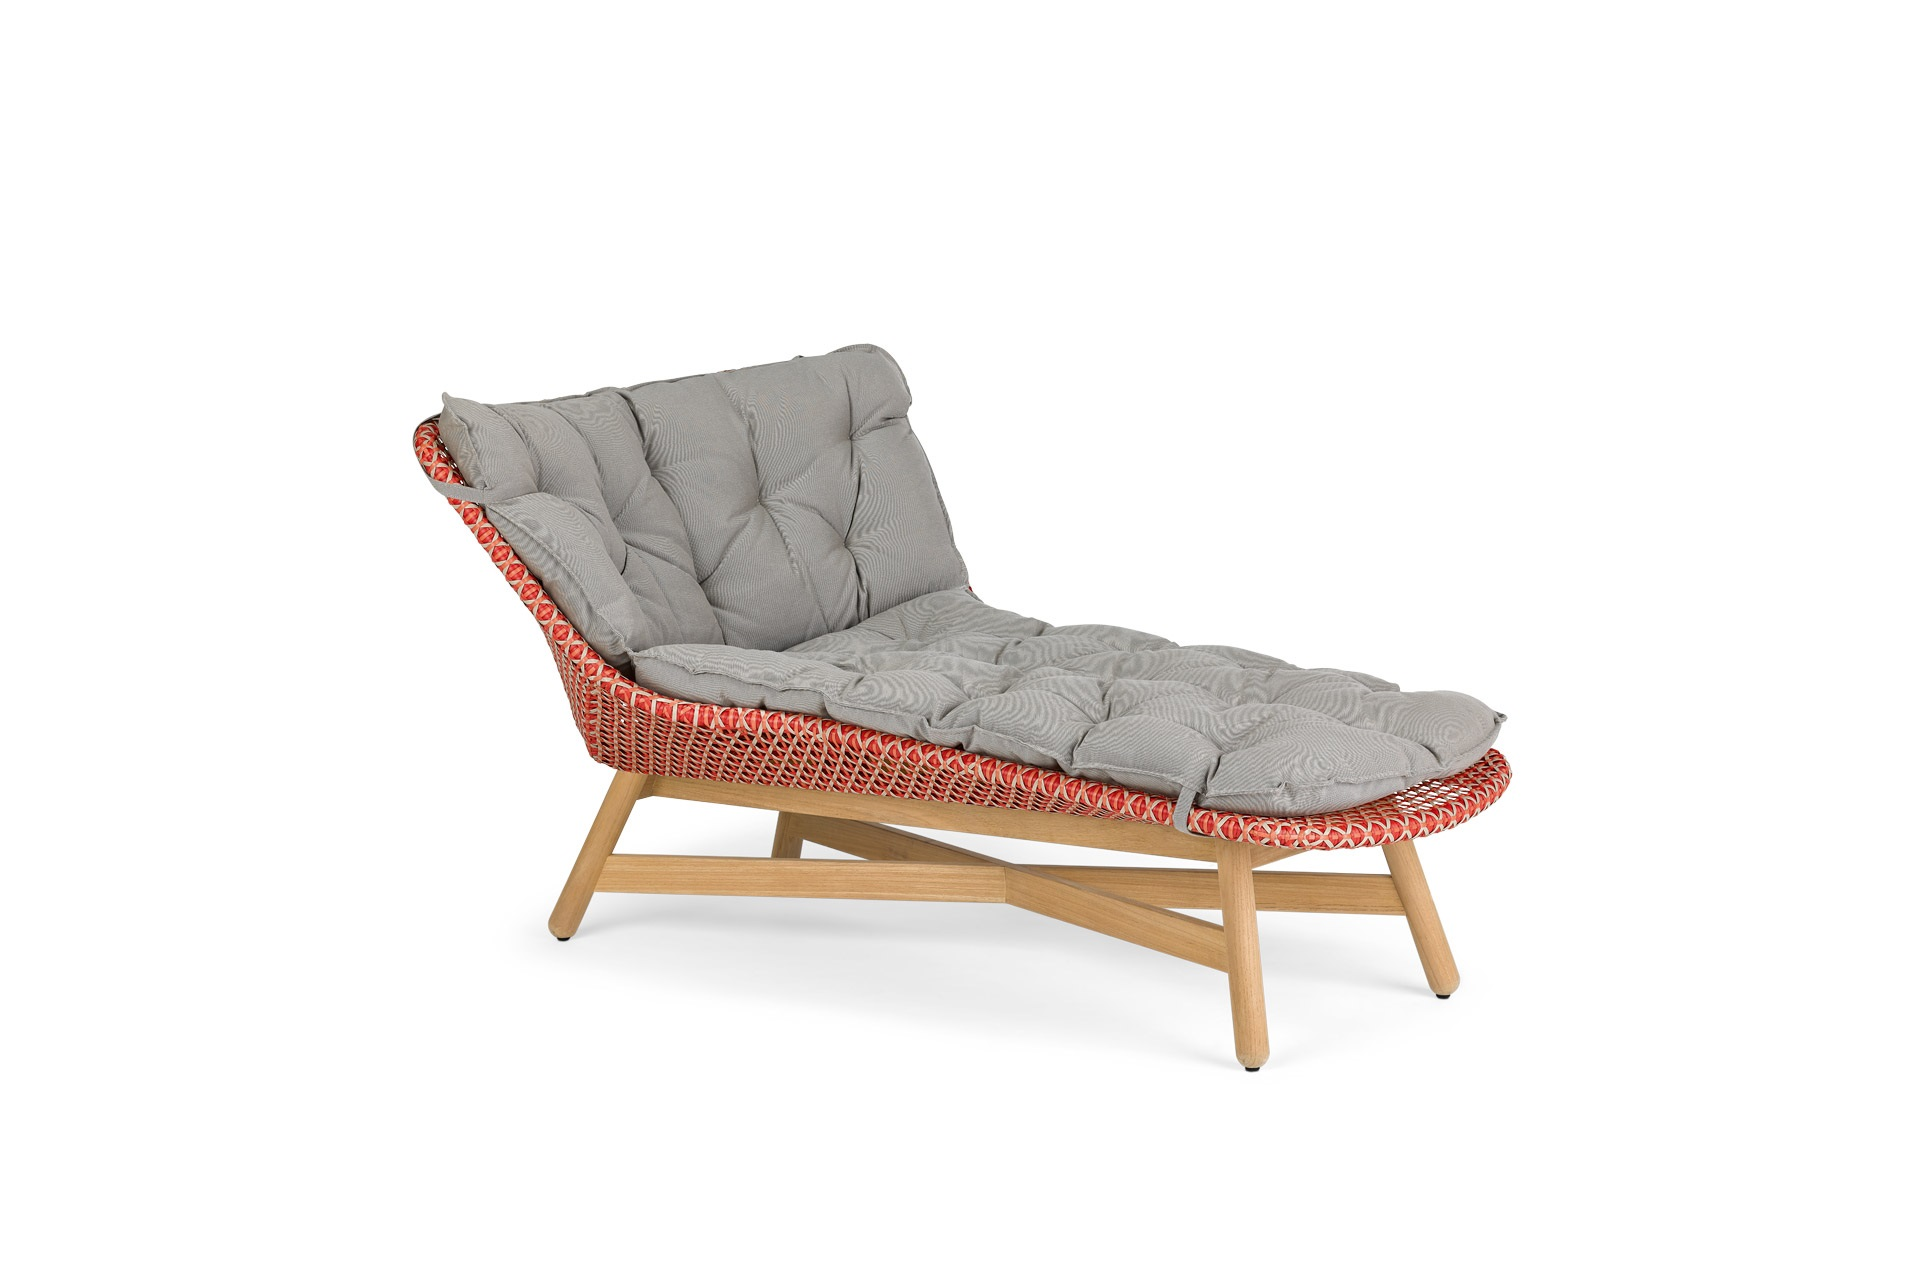 daybed DEDON | MBRACE | Daybed daybed